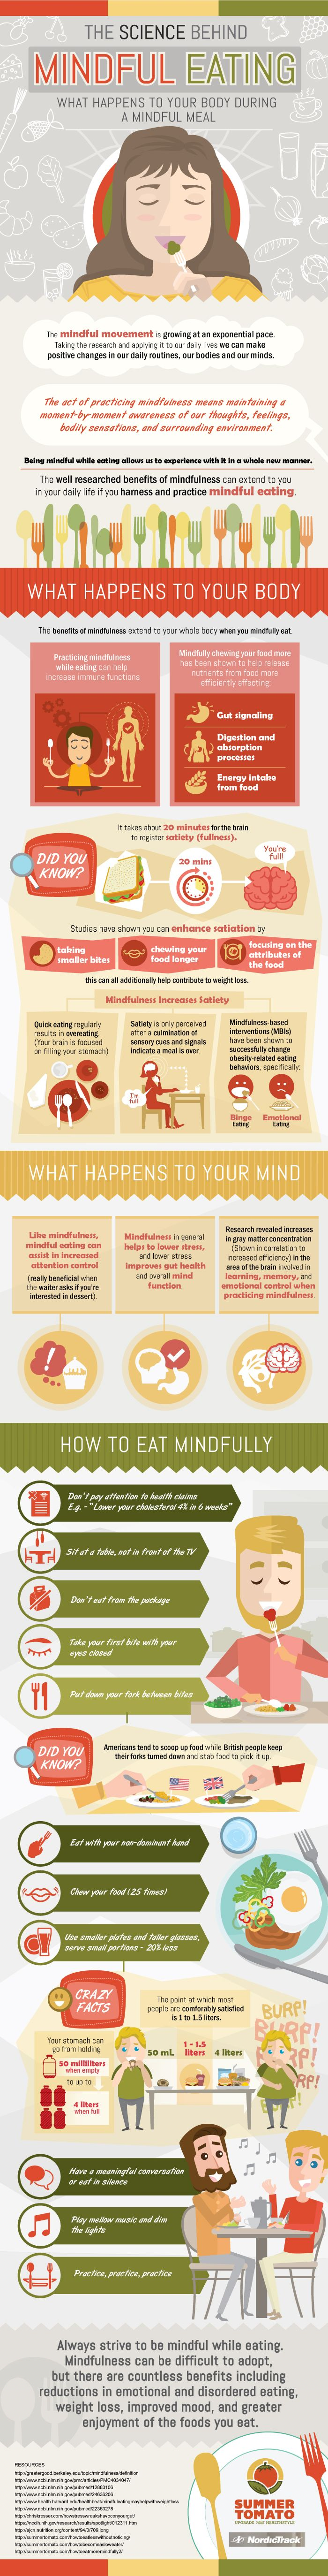 The Science Behind Mindful Eating: What Happens to Your Body During A... | Summer Tomato | Summer Tomato: